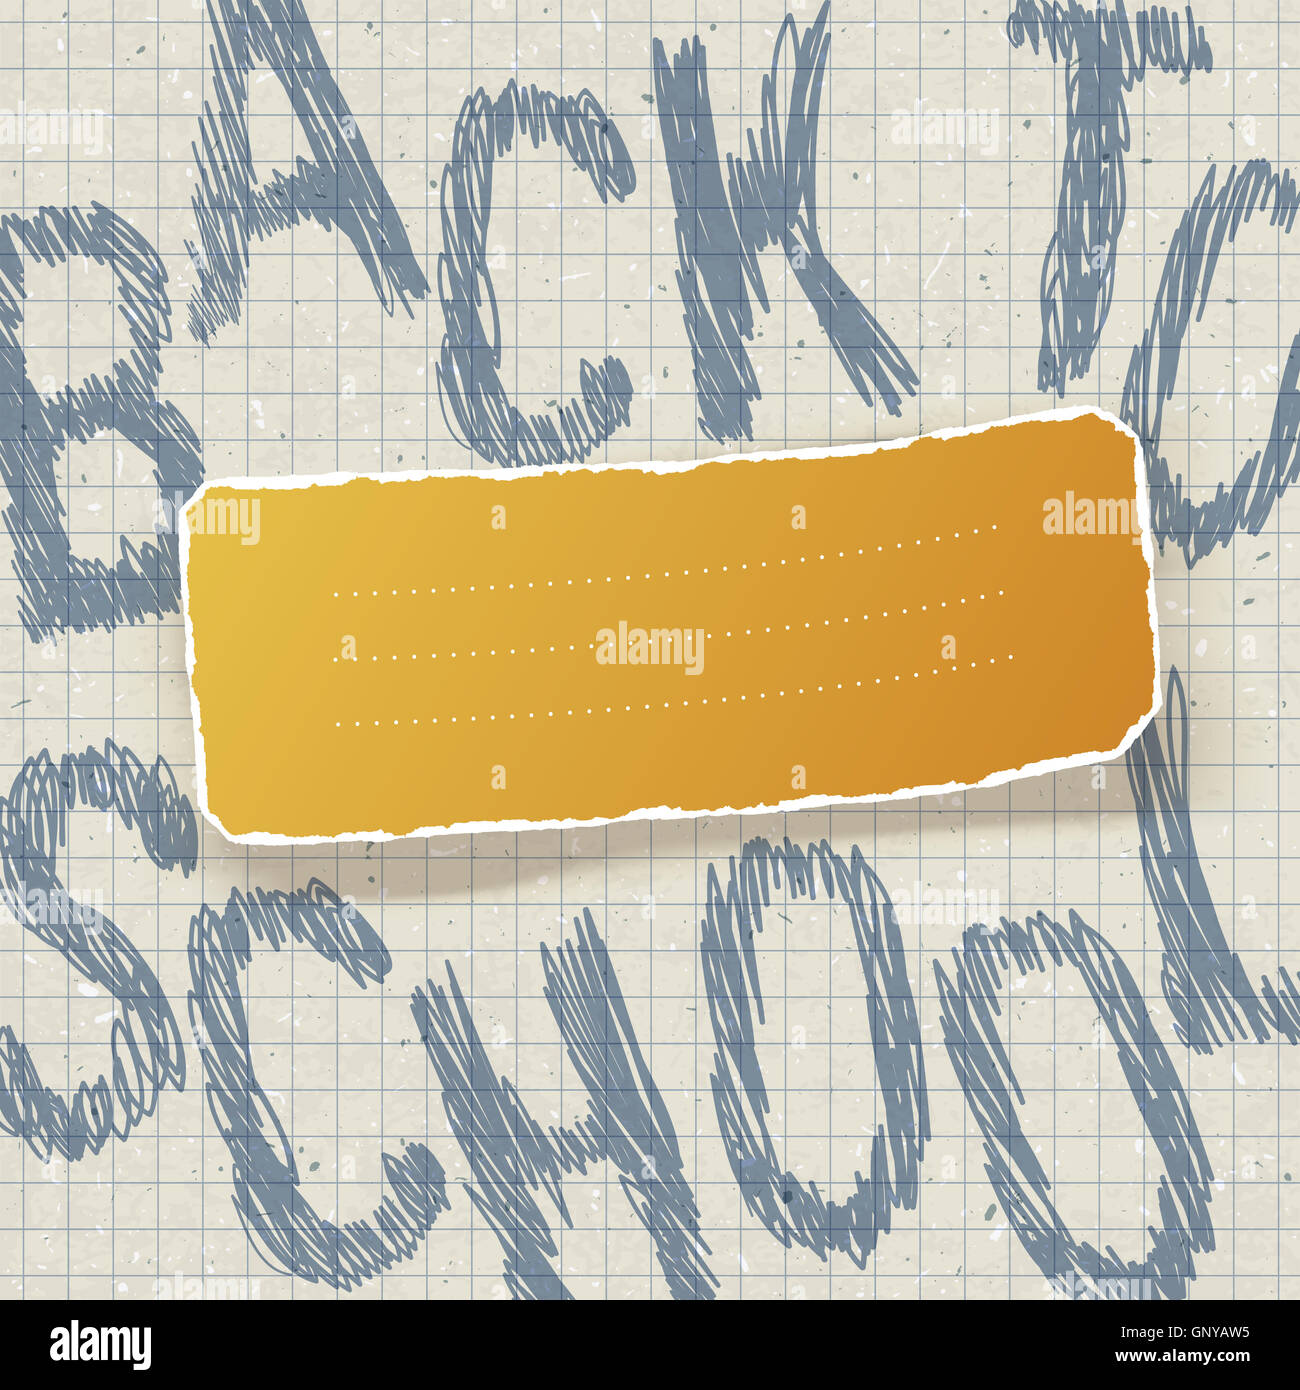 Back to school. Education themed abstract background, vector ill - Stock Image